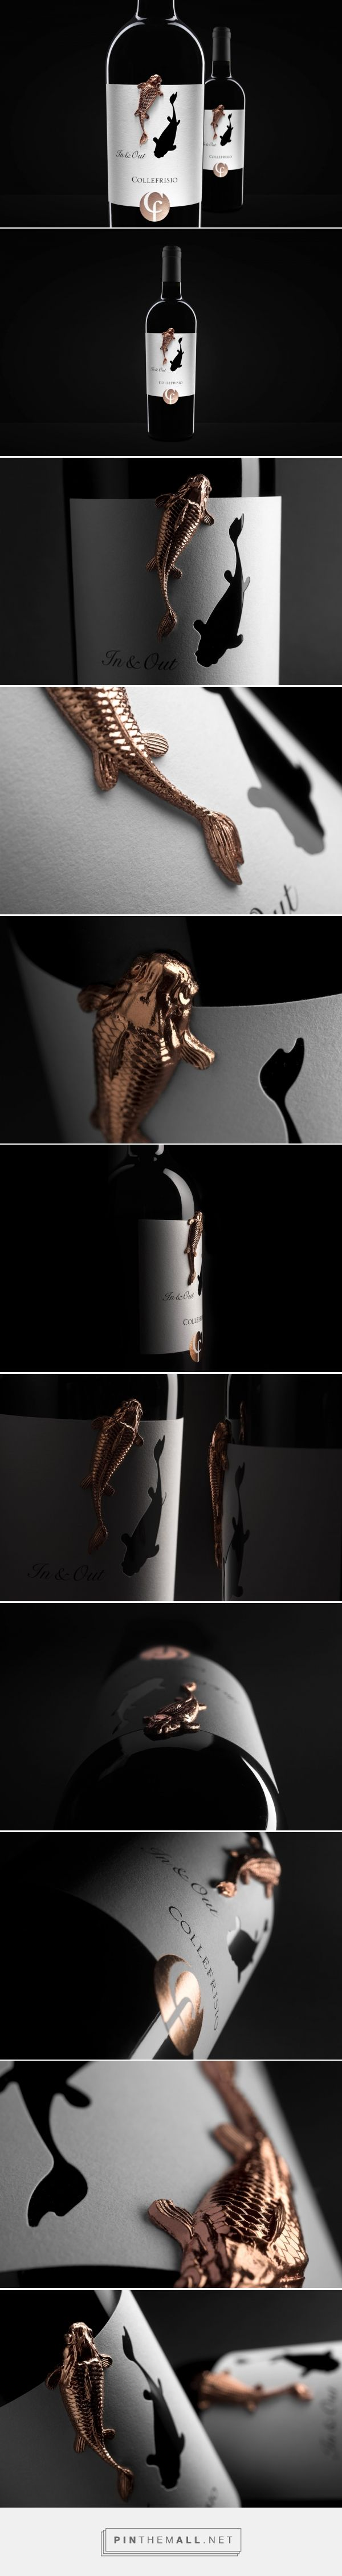 In&Out wine packaging design by Spazio Di Paolo - https://www.packagingoftheworld.com/2018/03/in.html